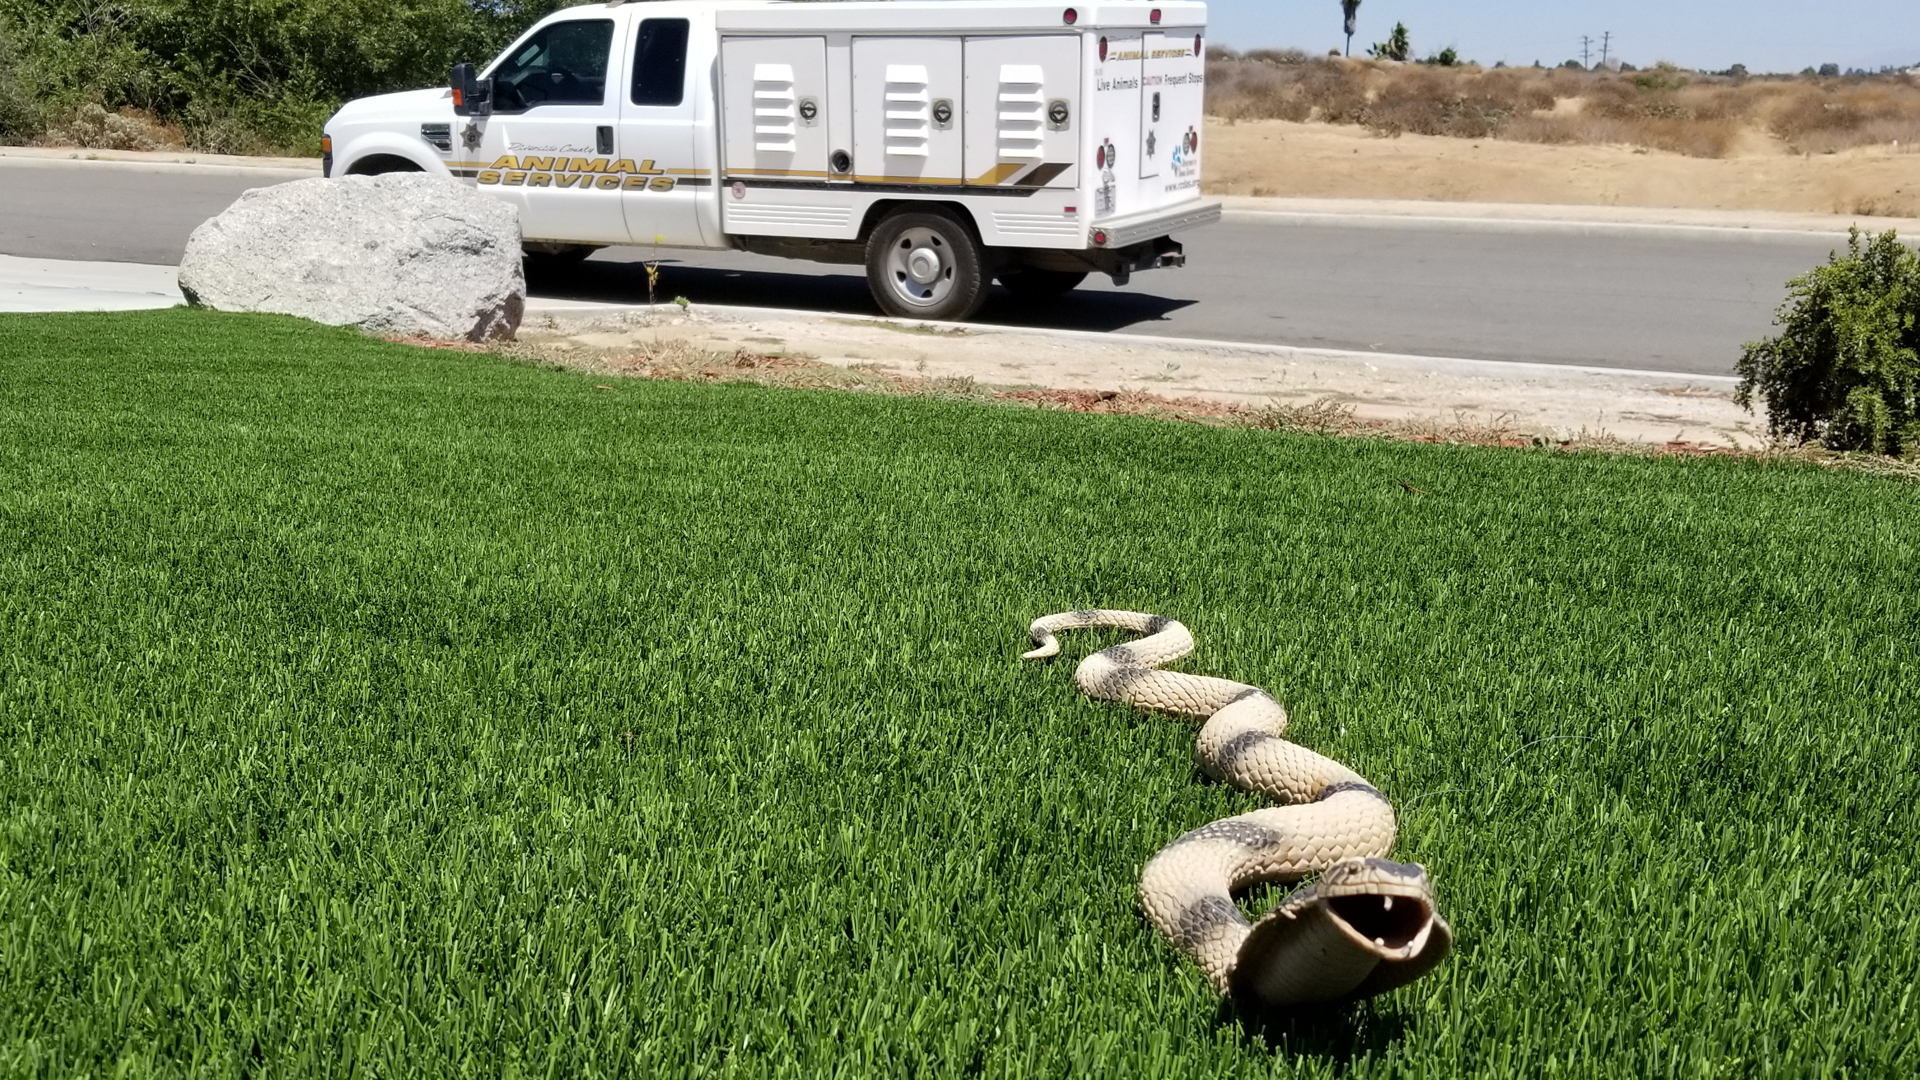 A toy snake prompted an animal services response in Riverside on Aug. 10, 2019. (Credit: Adam Haisten Riverside County Animal Services)